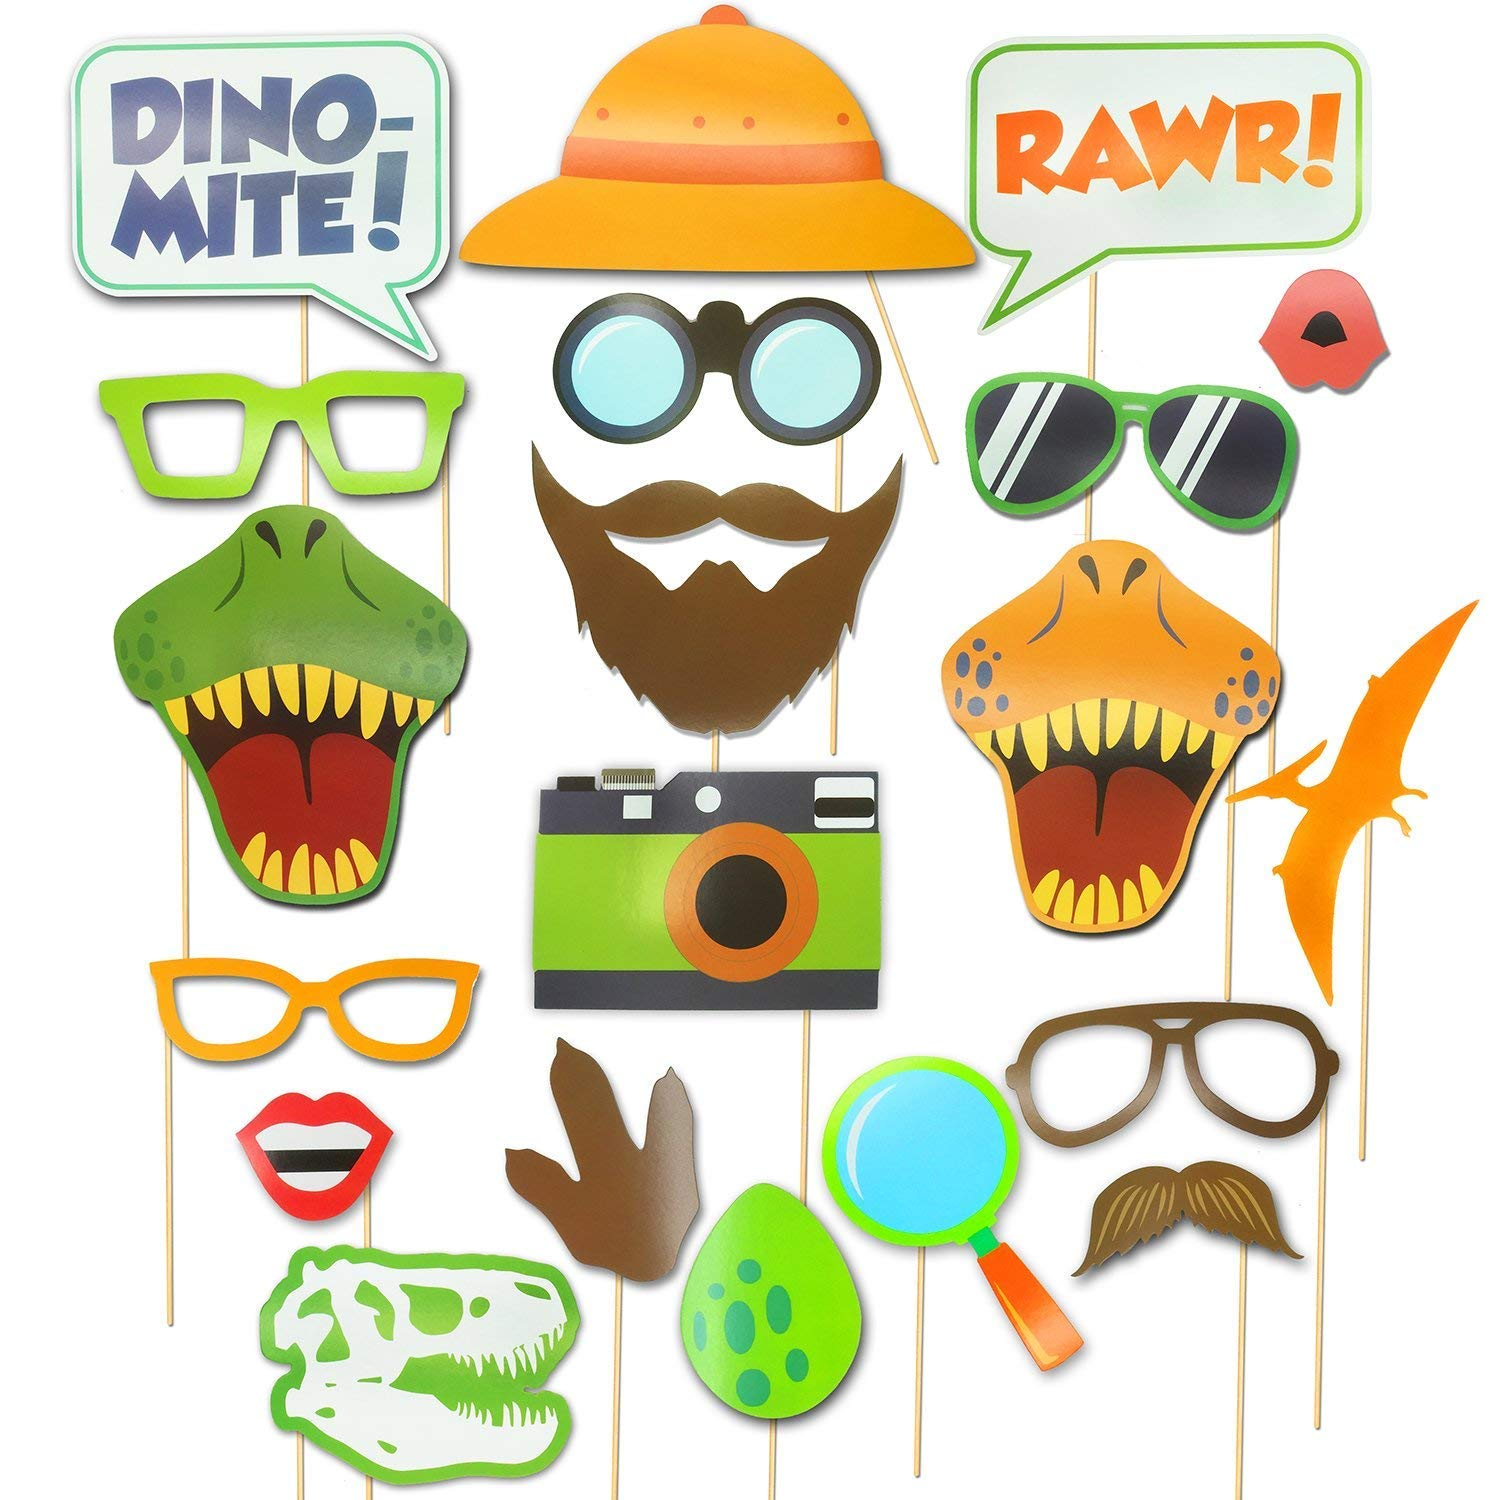 Dinosaur Photo Booth Props - Dino Colorful Photo Booth Props - Dinosaur Party Supplies-Jurassic Dinosaur Jungle Park Photo Props For Kids Birthday